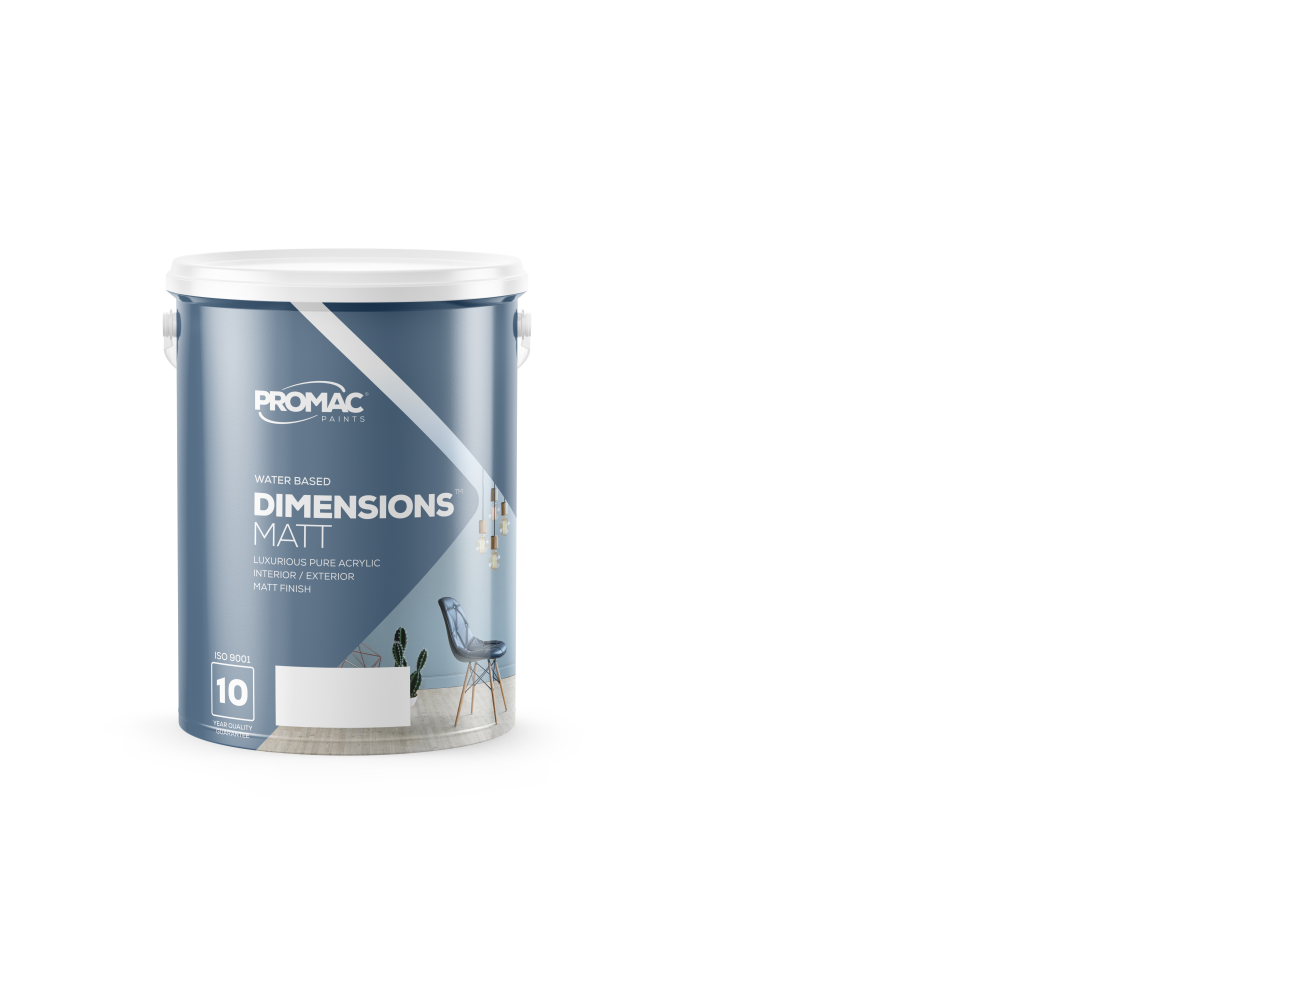 DIMENSIONSMATT - WATER BASEDPromac Dimensions™ Matt is a water-based, pure acrylic, with a high-quality matt finish and excellent washability making it suitable for high traffic interior and exterior areas. It has excellent adhesive properties and is mould, stain and water resistant.